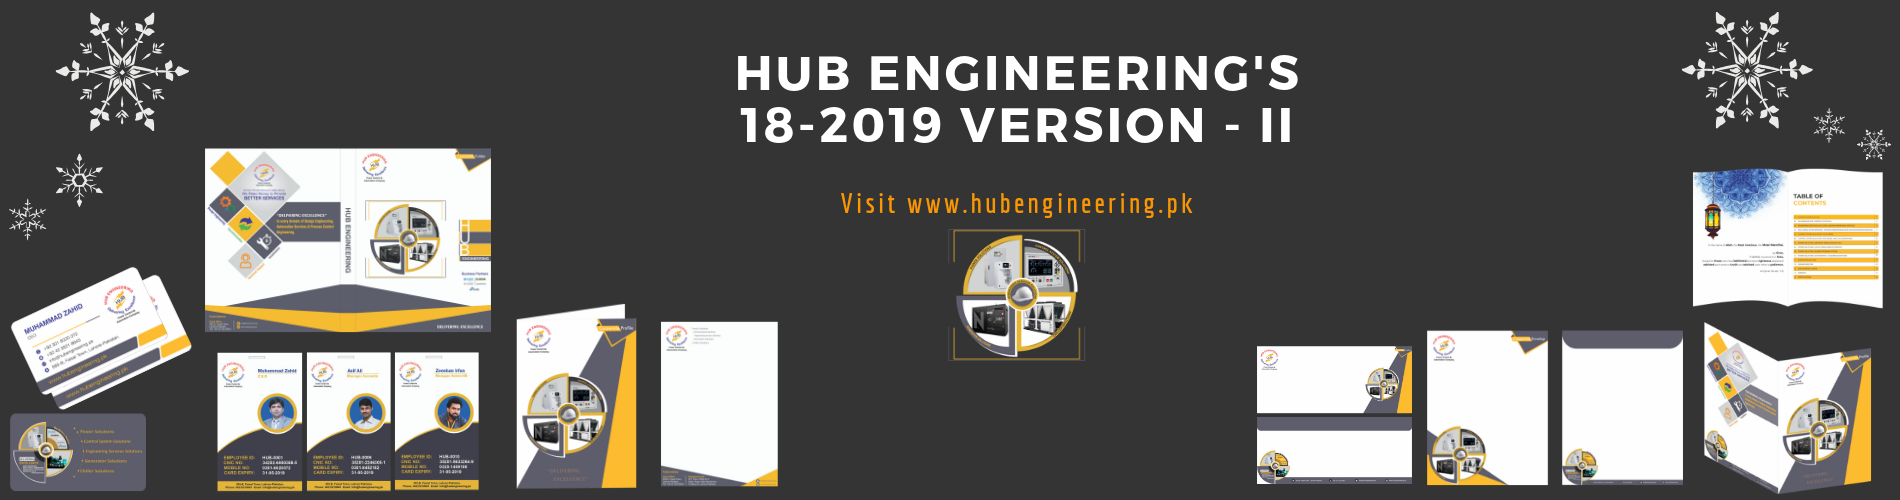 Hub Engineering's Stationery Version 18-2019